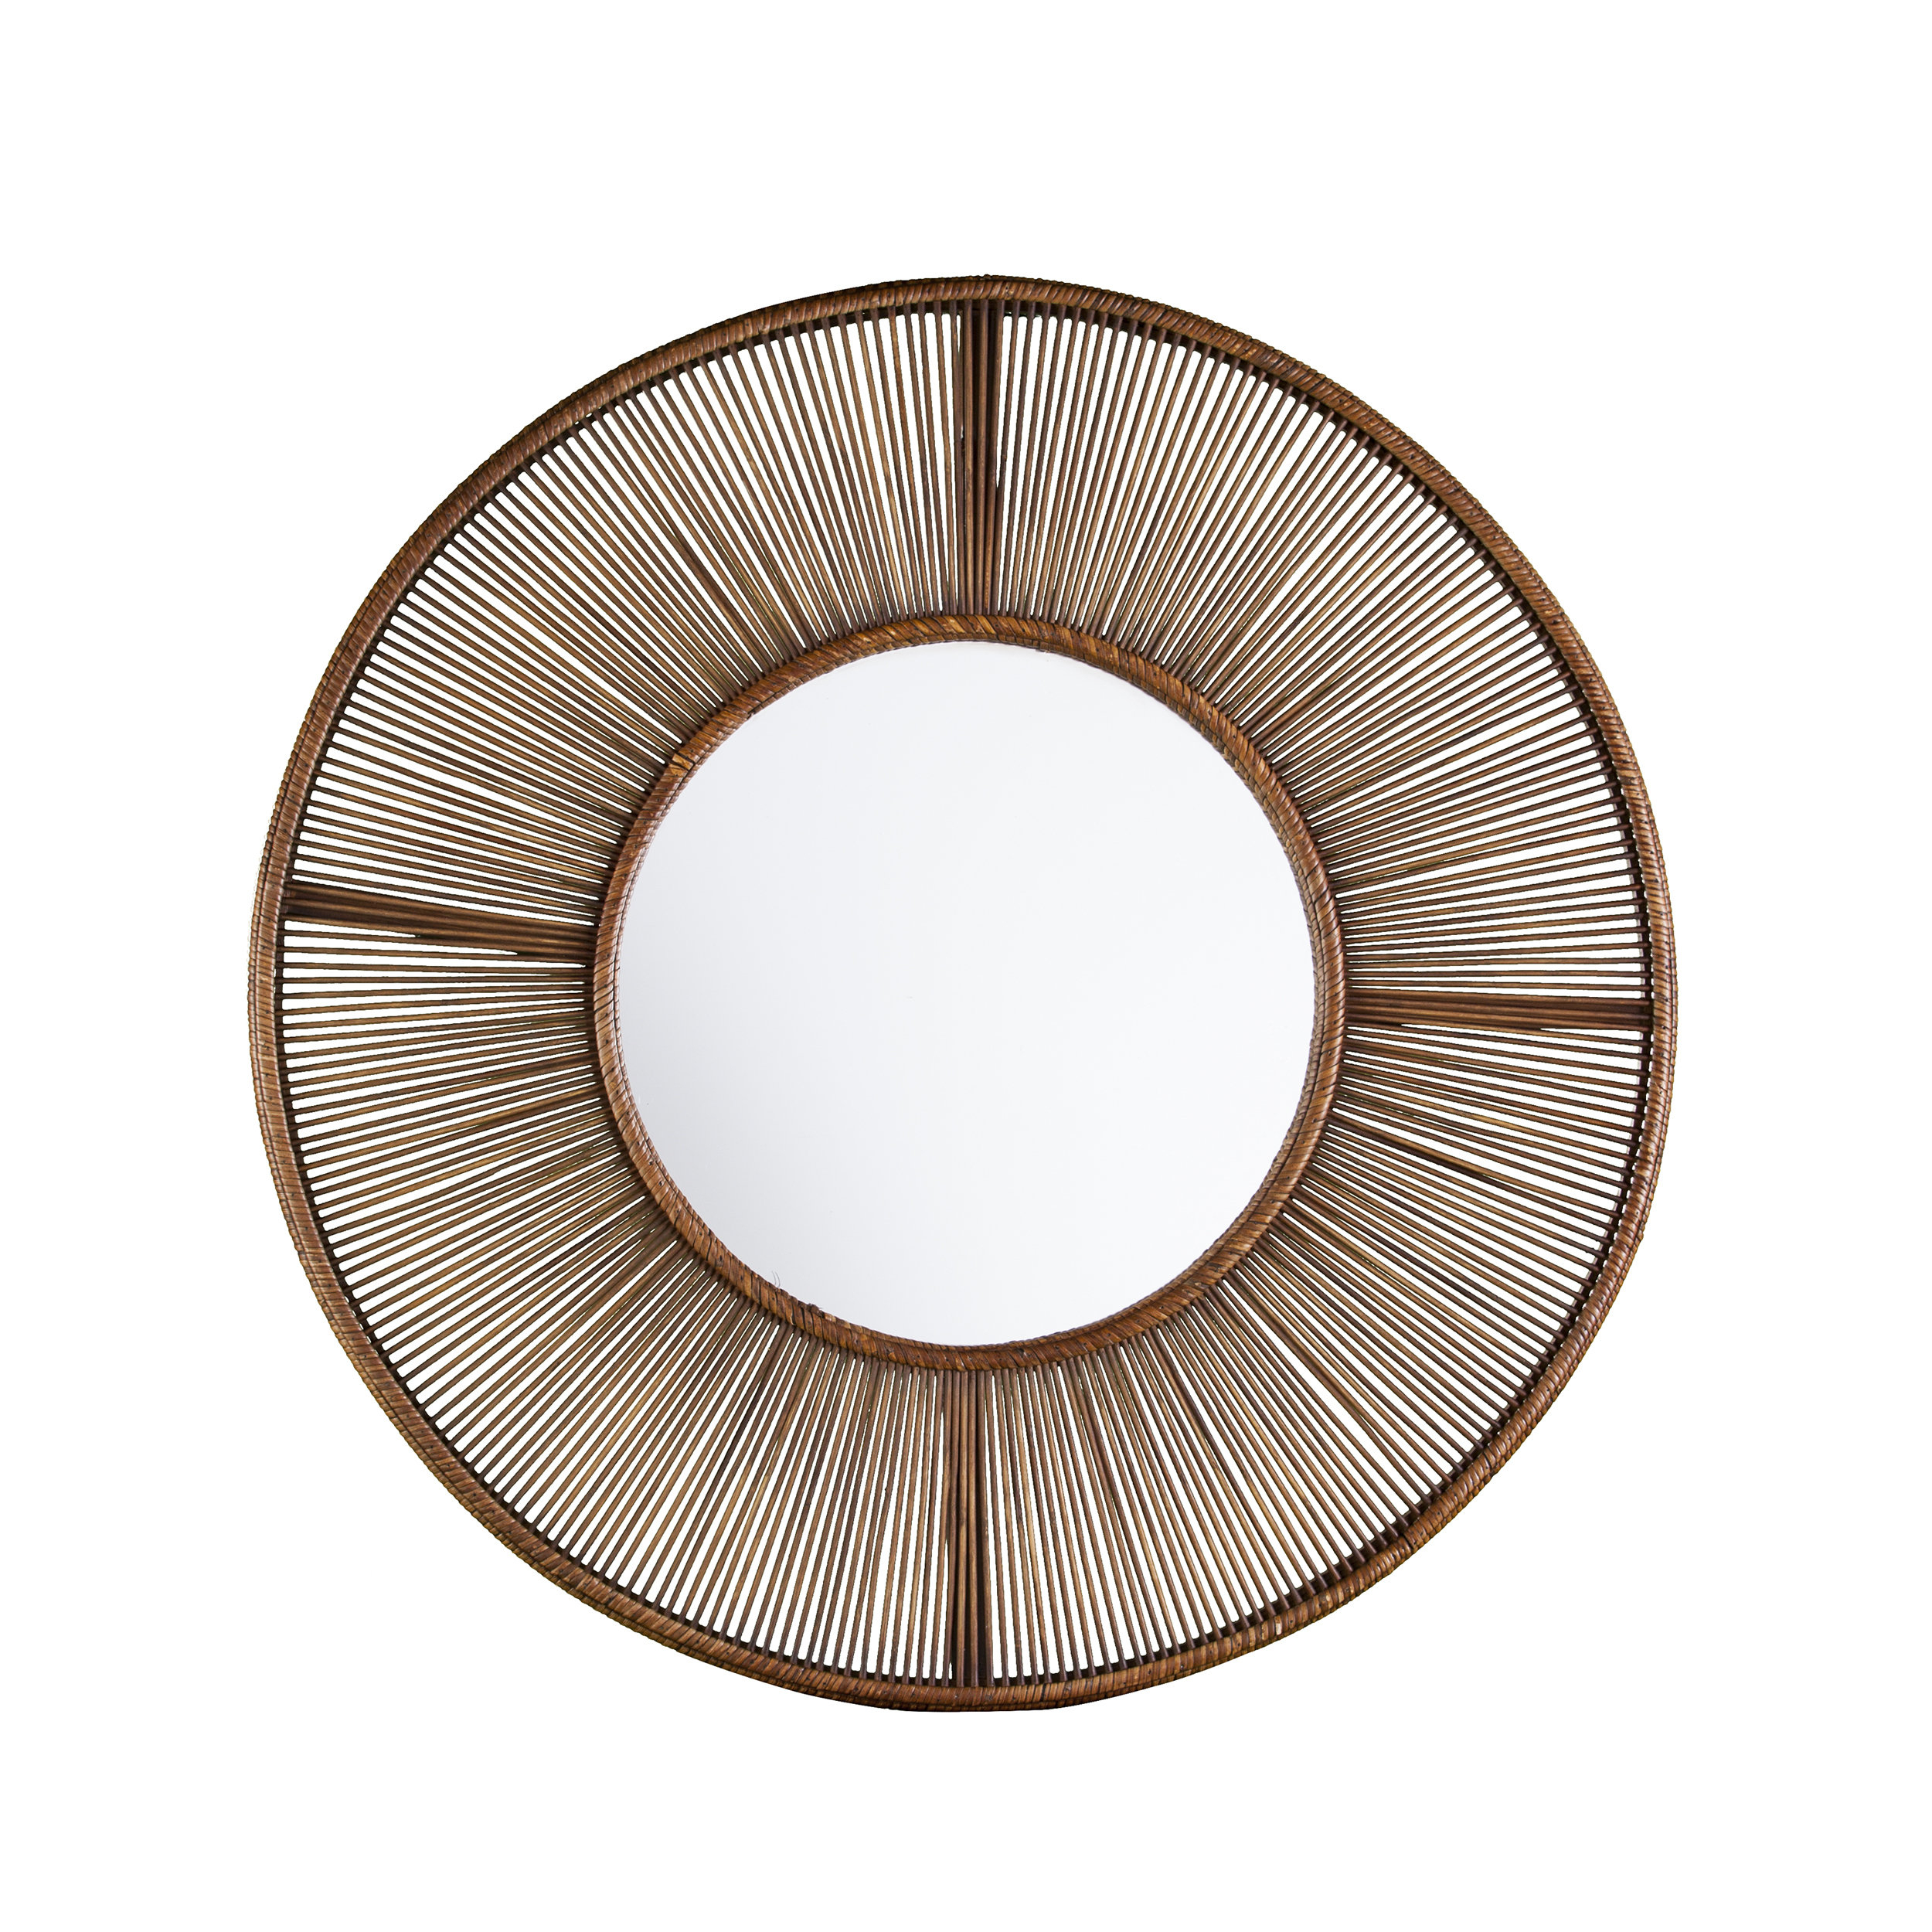 Vanburen Oversized Decorative Accent Mirror In Jarrod Sunburst Accent Mirrors (View 24 of 30)